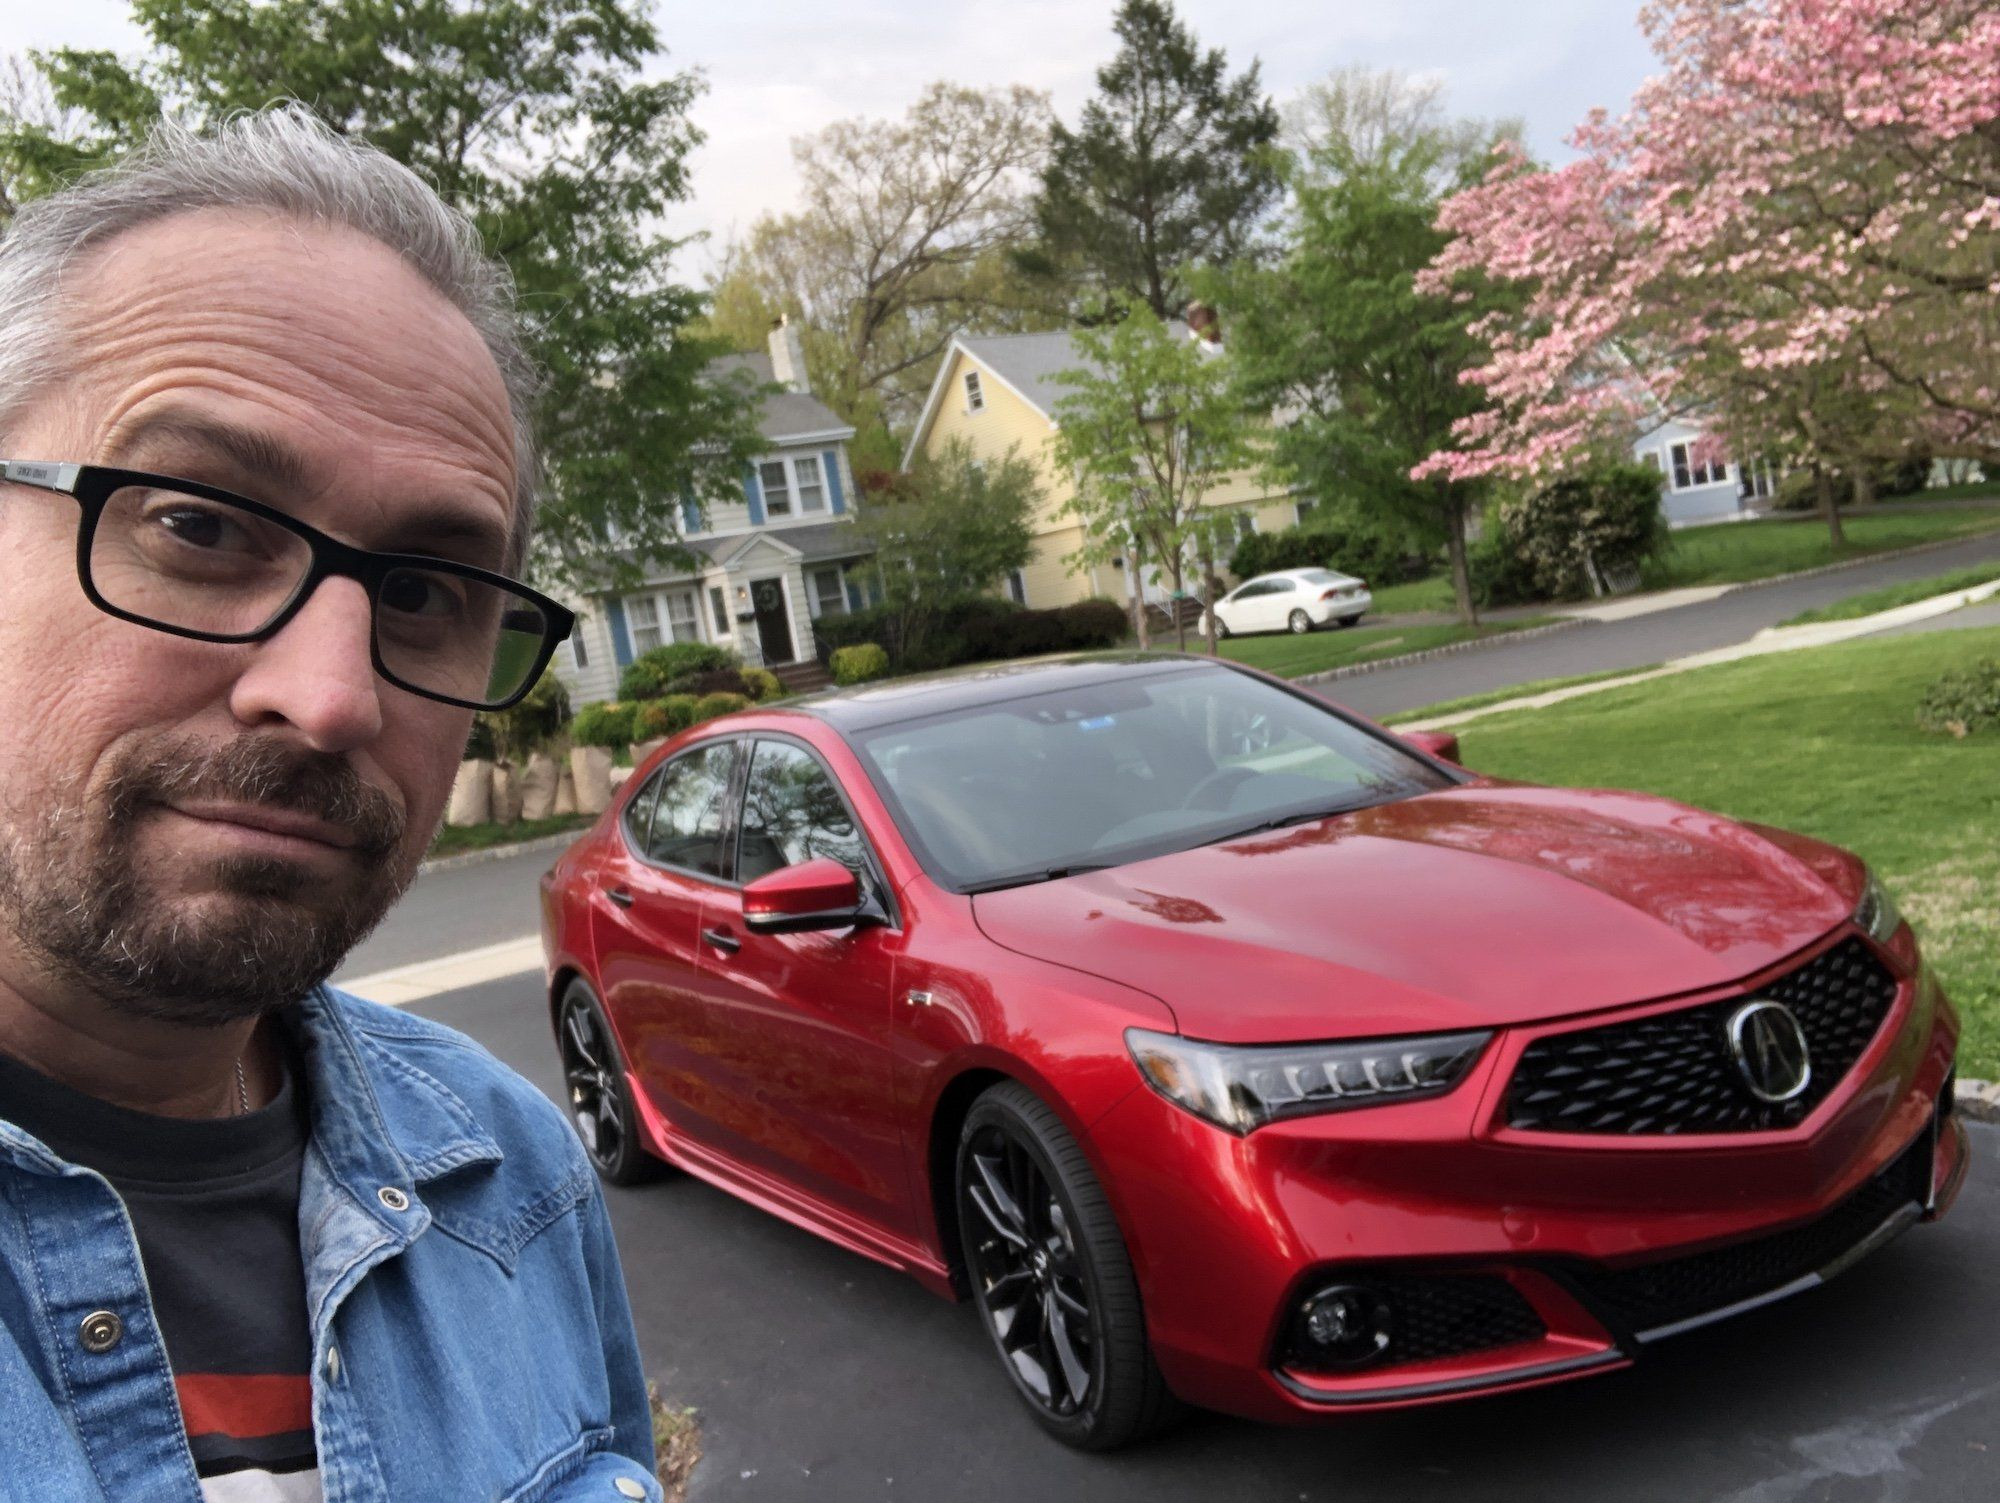 I Tested A 50 000 Acura Tlx A Spec Pmc Edition To Check Out The Limited Run Sedan And Decide If It S Worth The Price Acura Tlx Acura Sedan